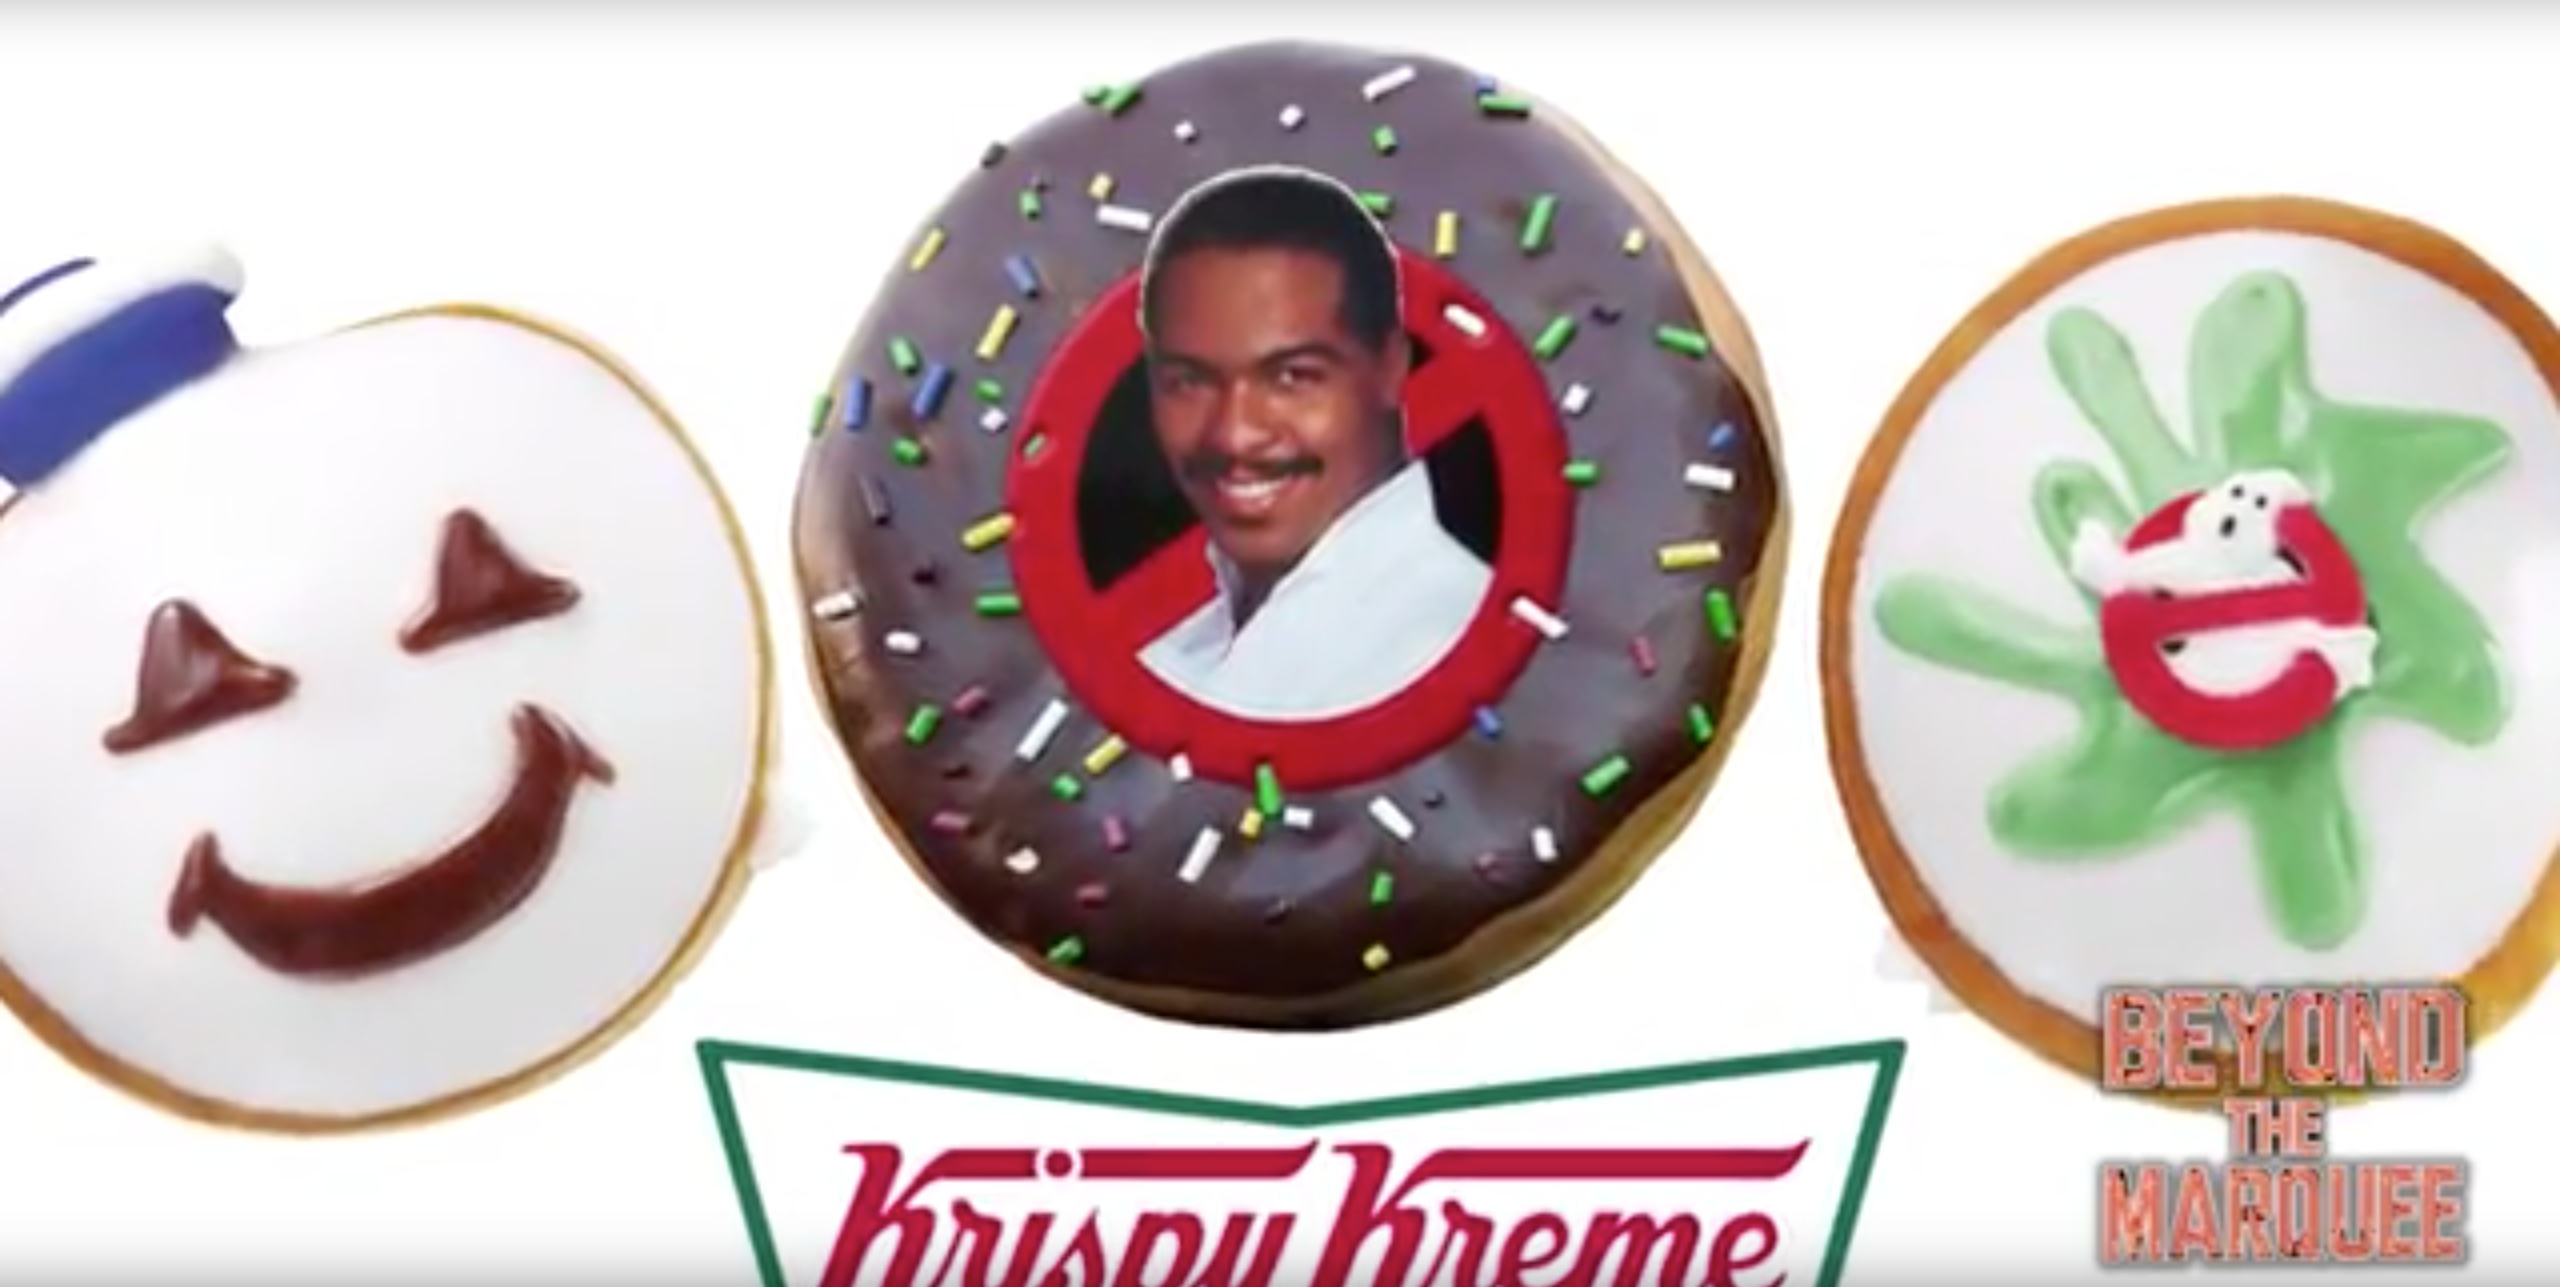 Ghostbusters Songwriter Ray Parker Junior Wants His Face on a Krispy Kreme Donut